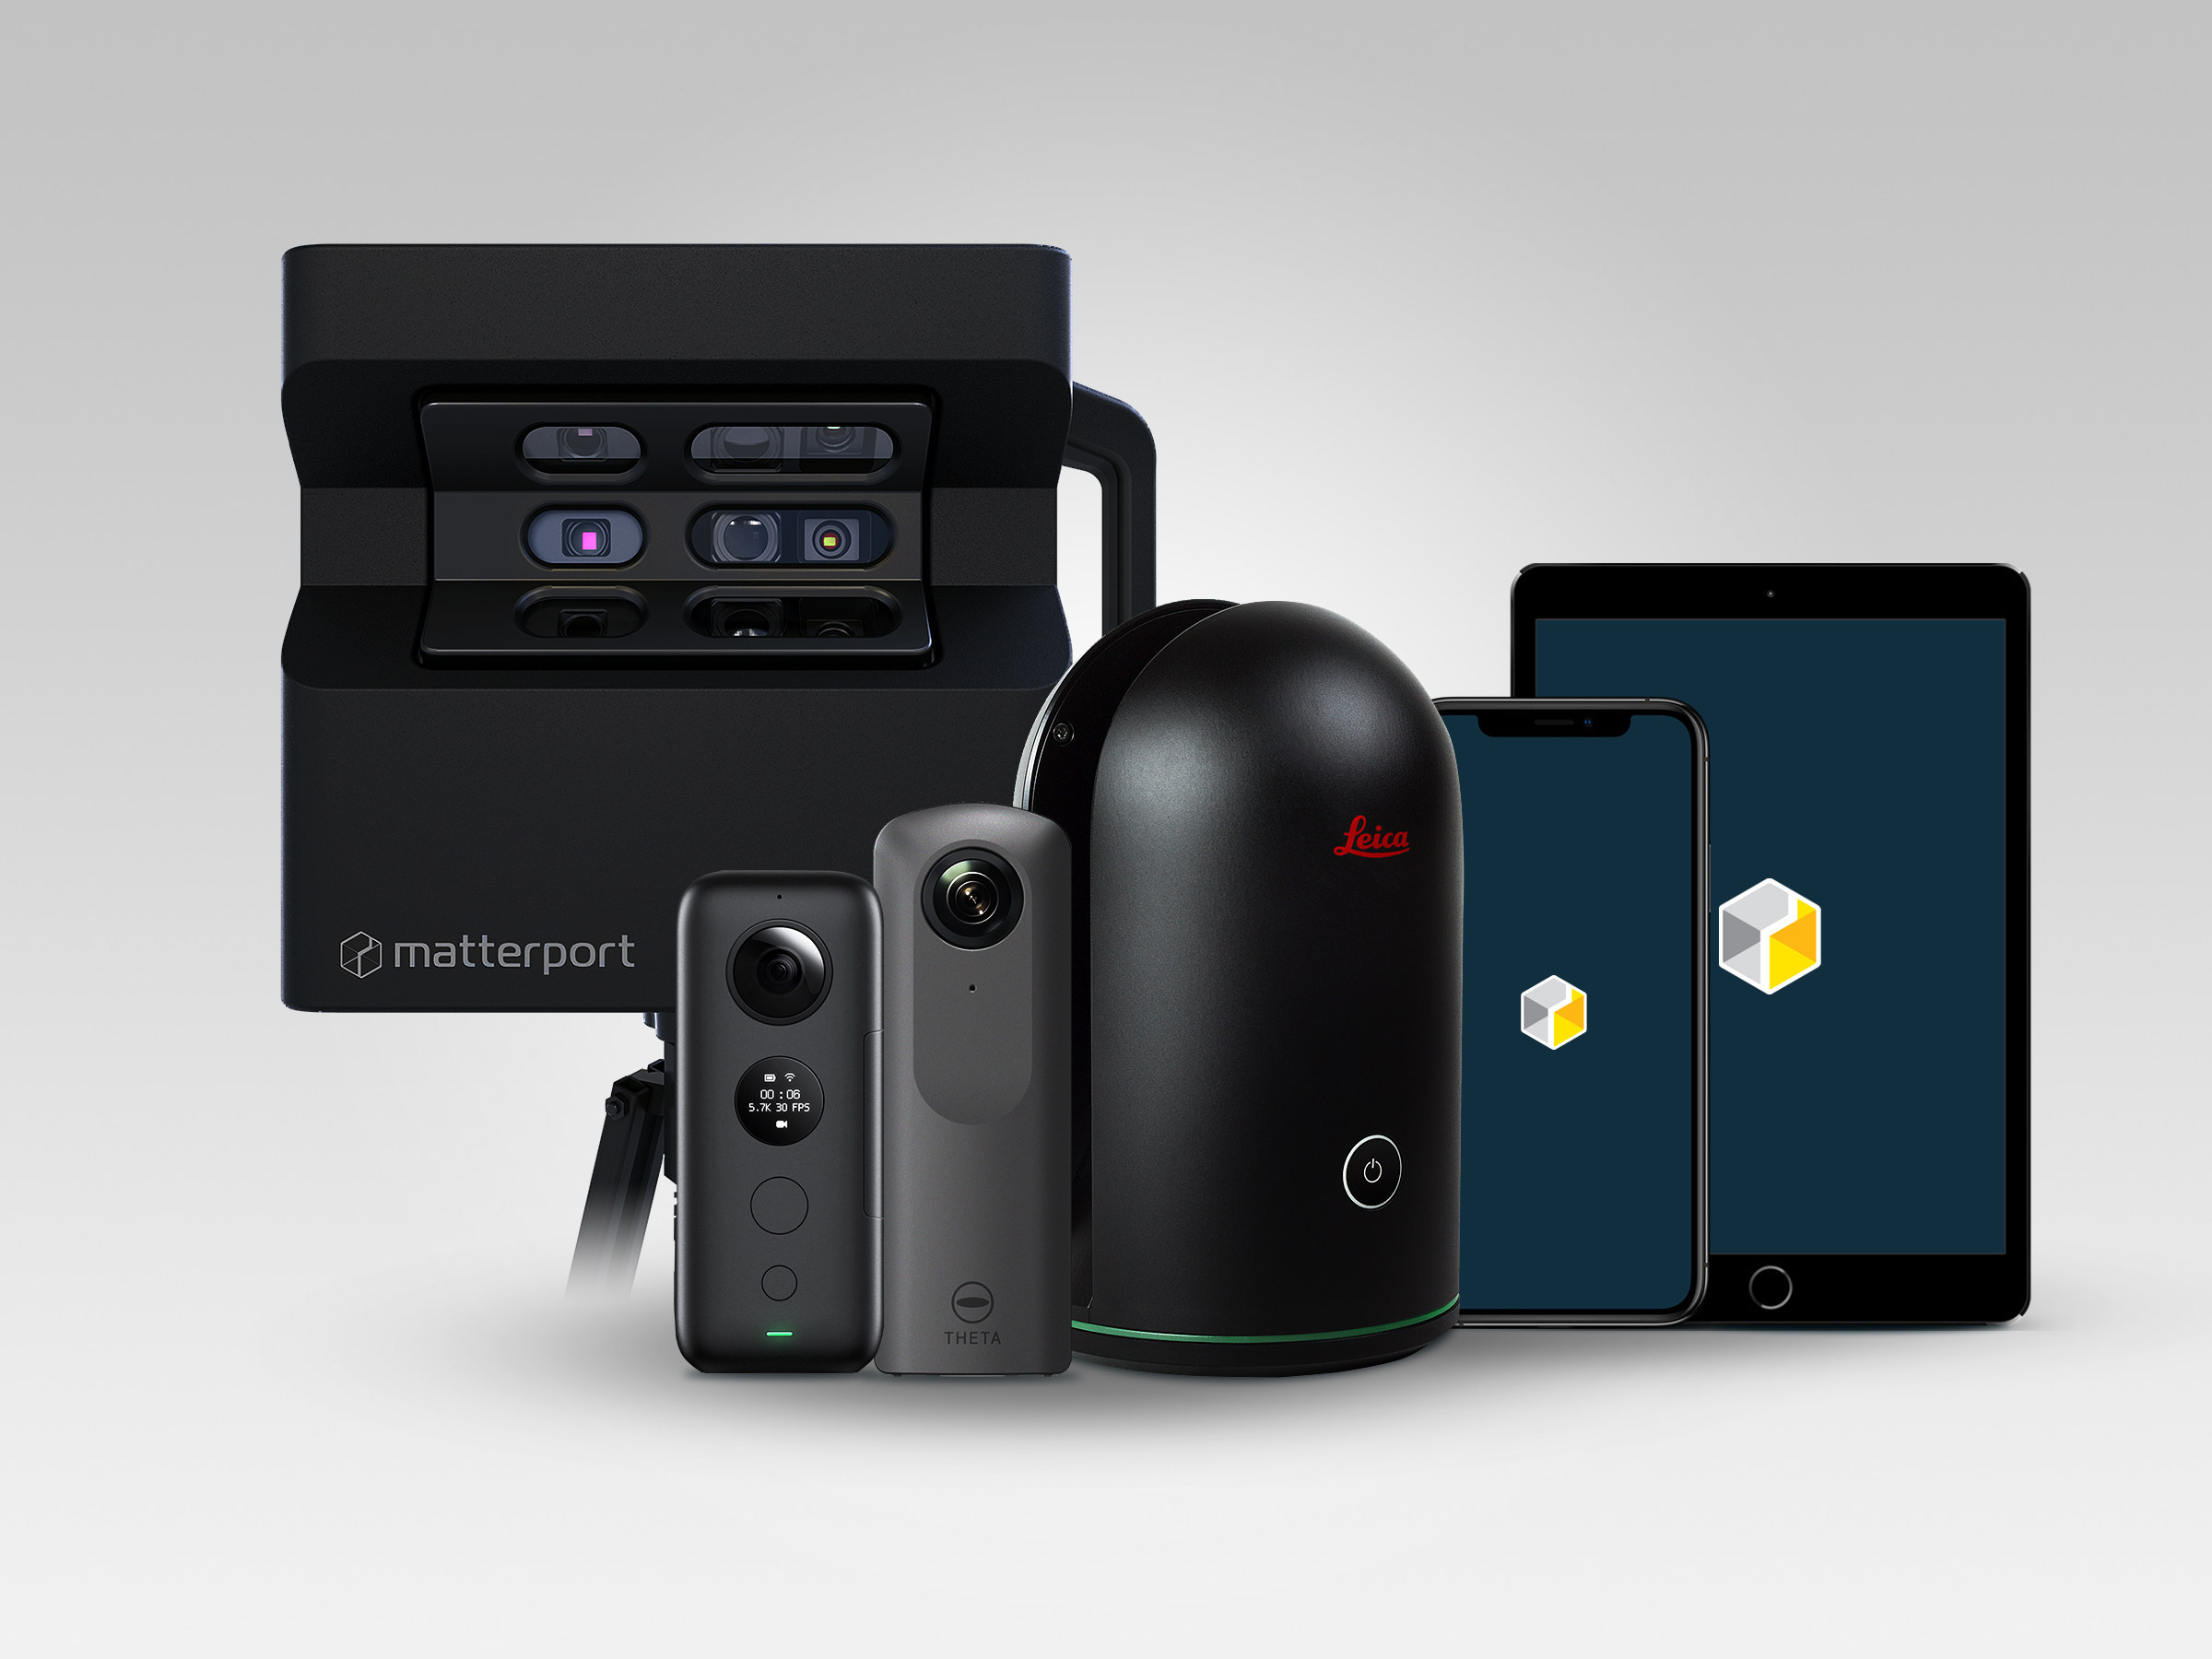 From left to right: Matterport's Flagship Pro2 camera; compatible third-party spherical lens (360-degree) cameras Insta360 ONE X and Ricoh Theta V; Leica Geosystems' BLK360 laser scanner; iPhone and iPad showcasing Matterport Cloud 3.0 compatibility with all iOS devices. Image via Matterport.